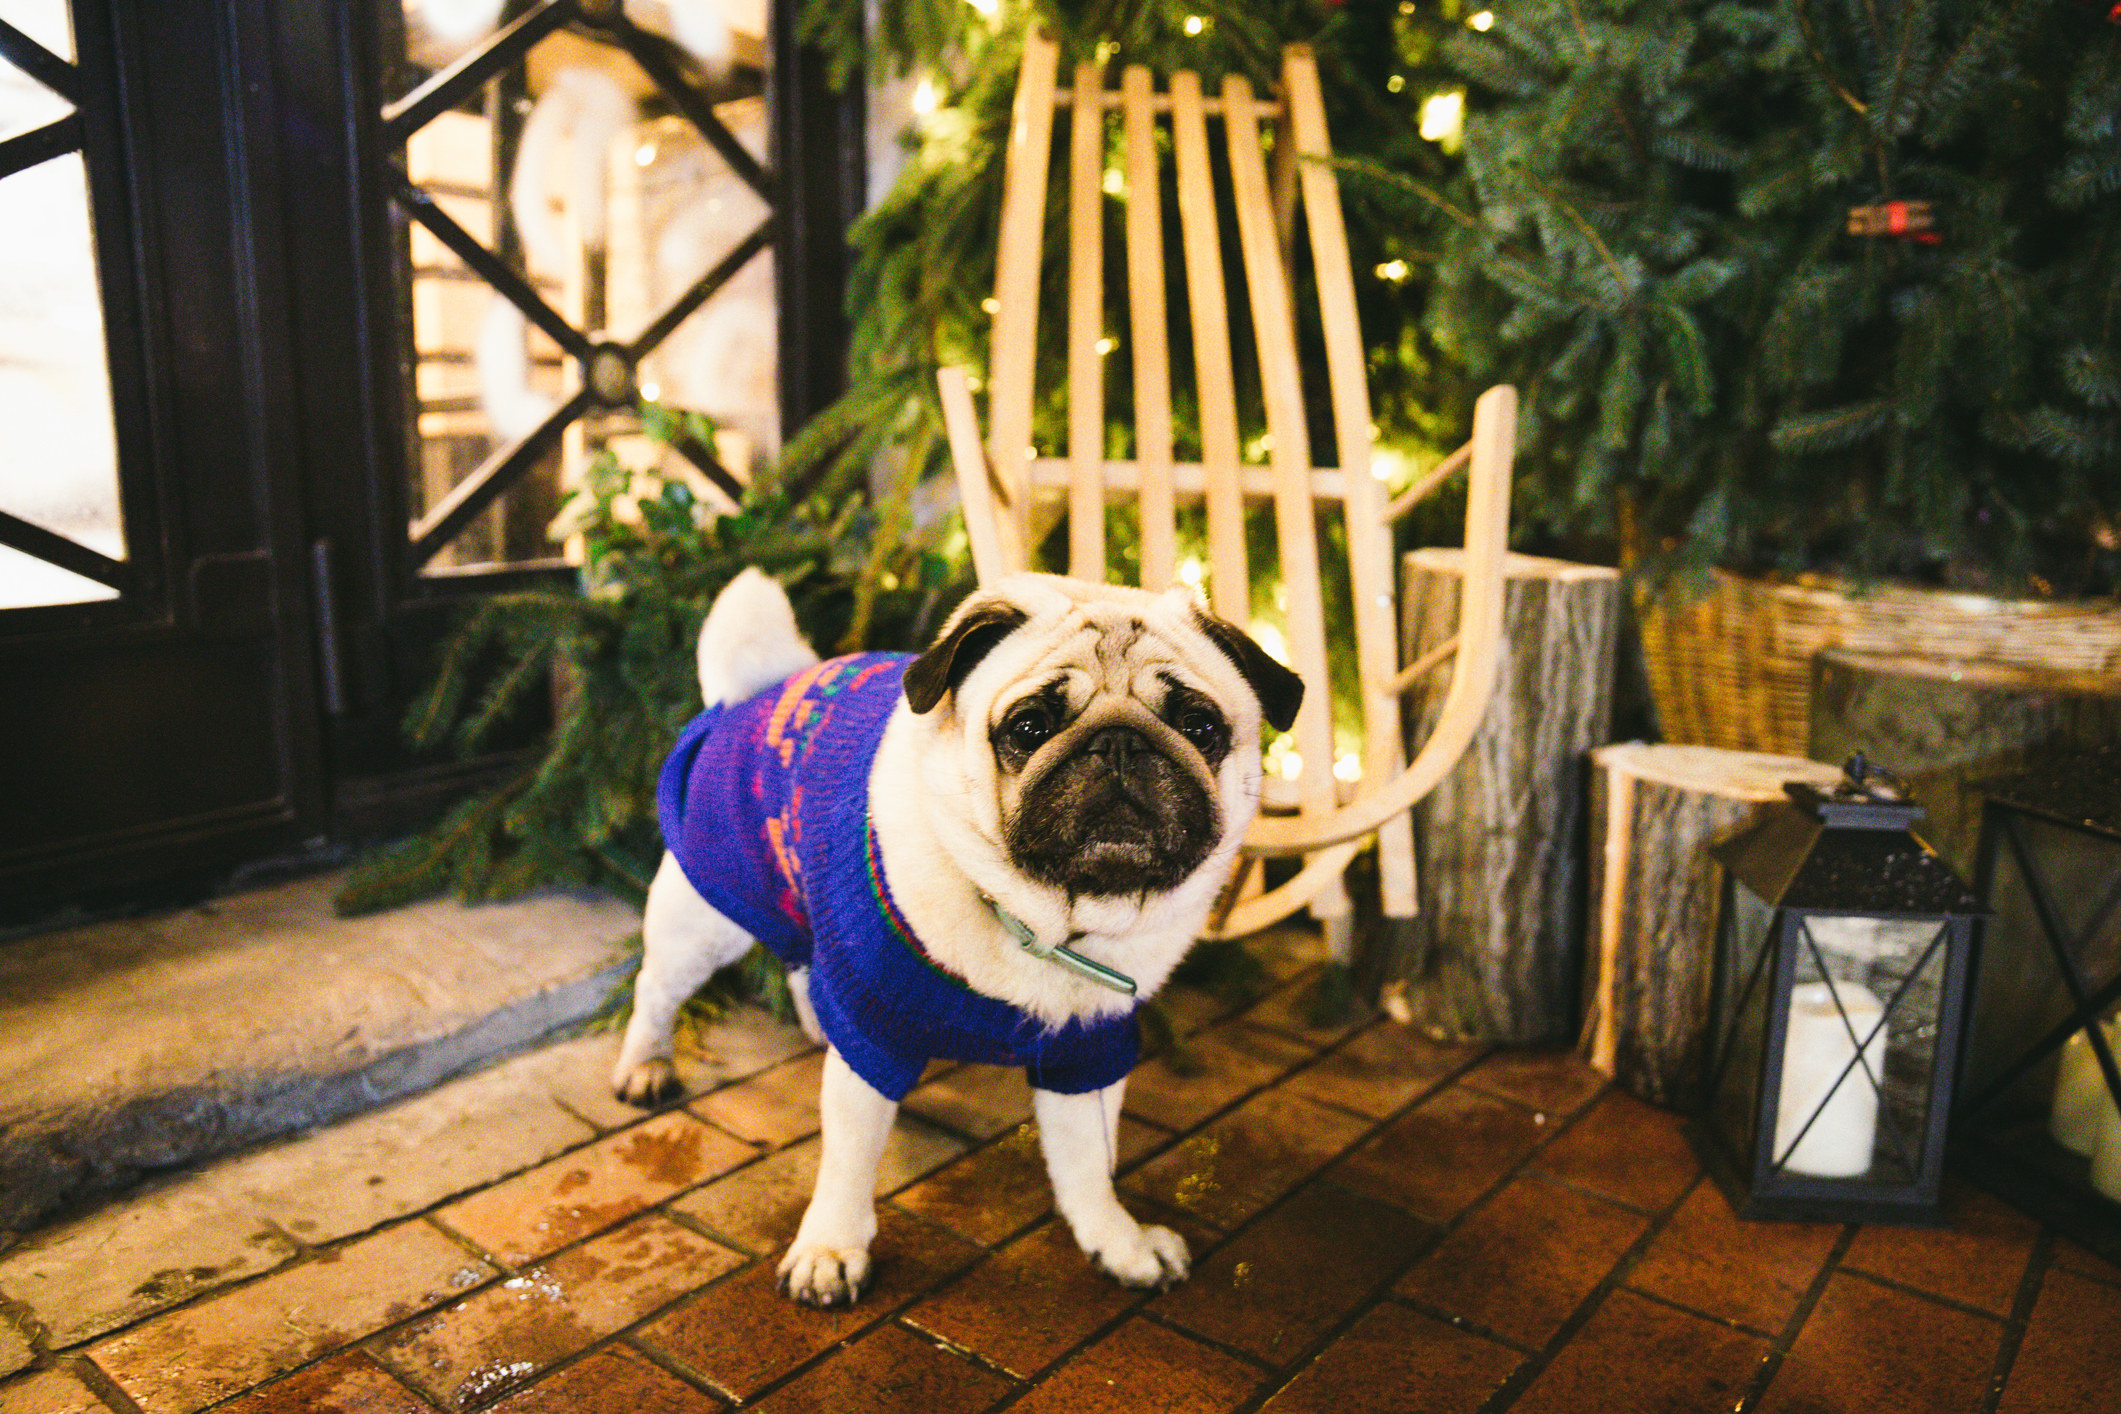 Pug in a Christmas sweater at a holiday market.